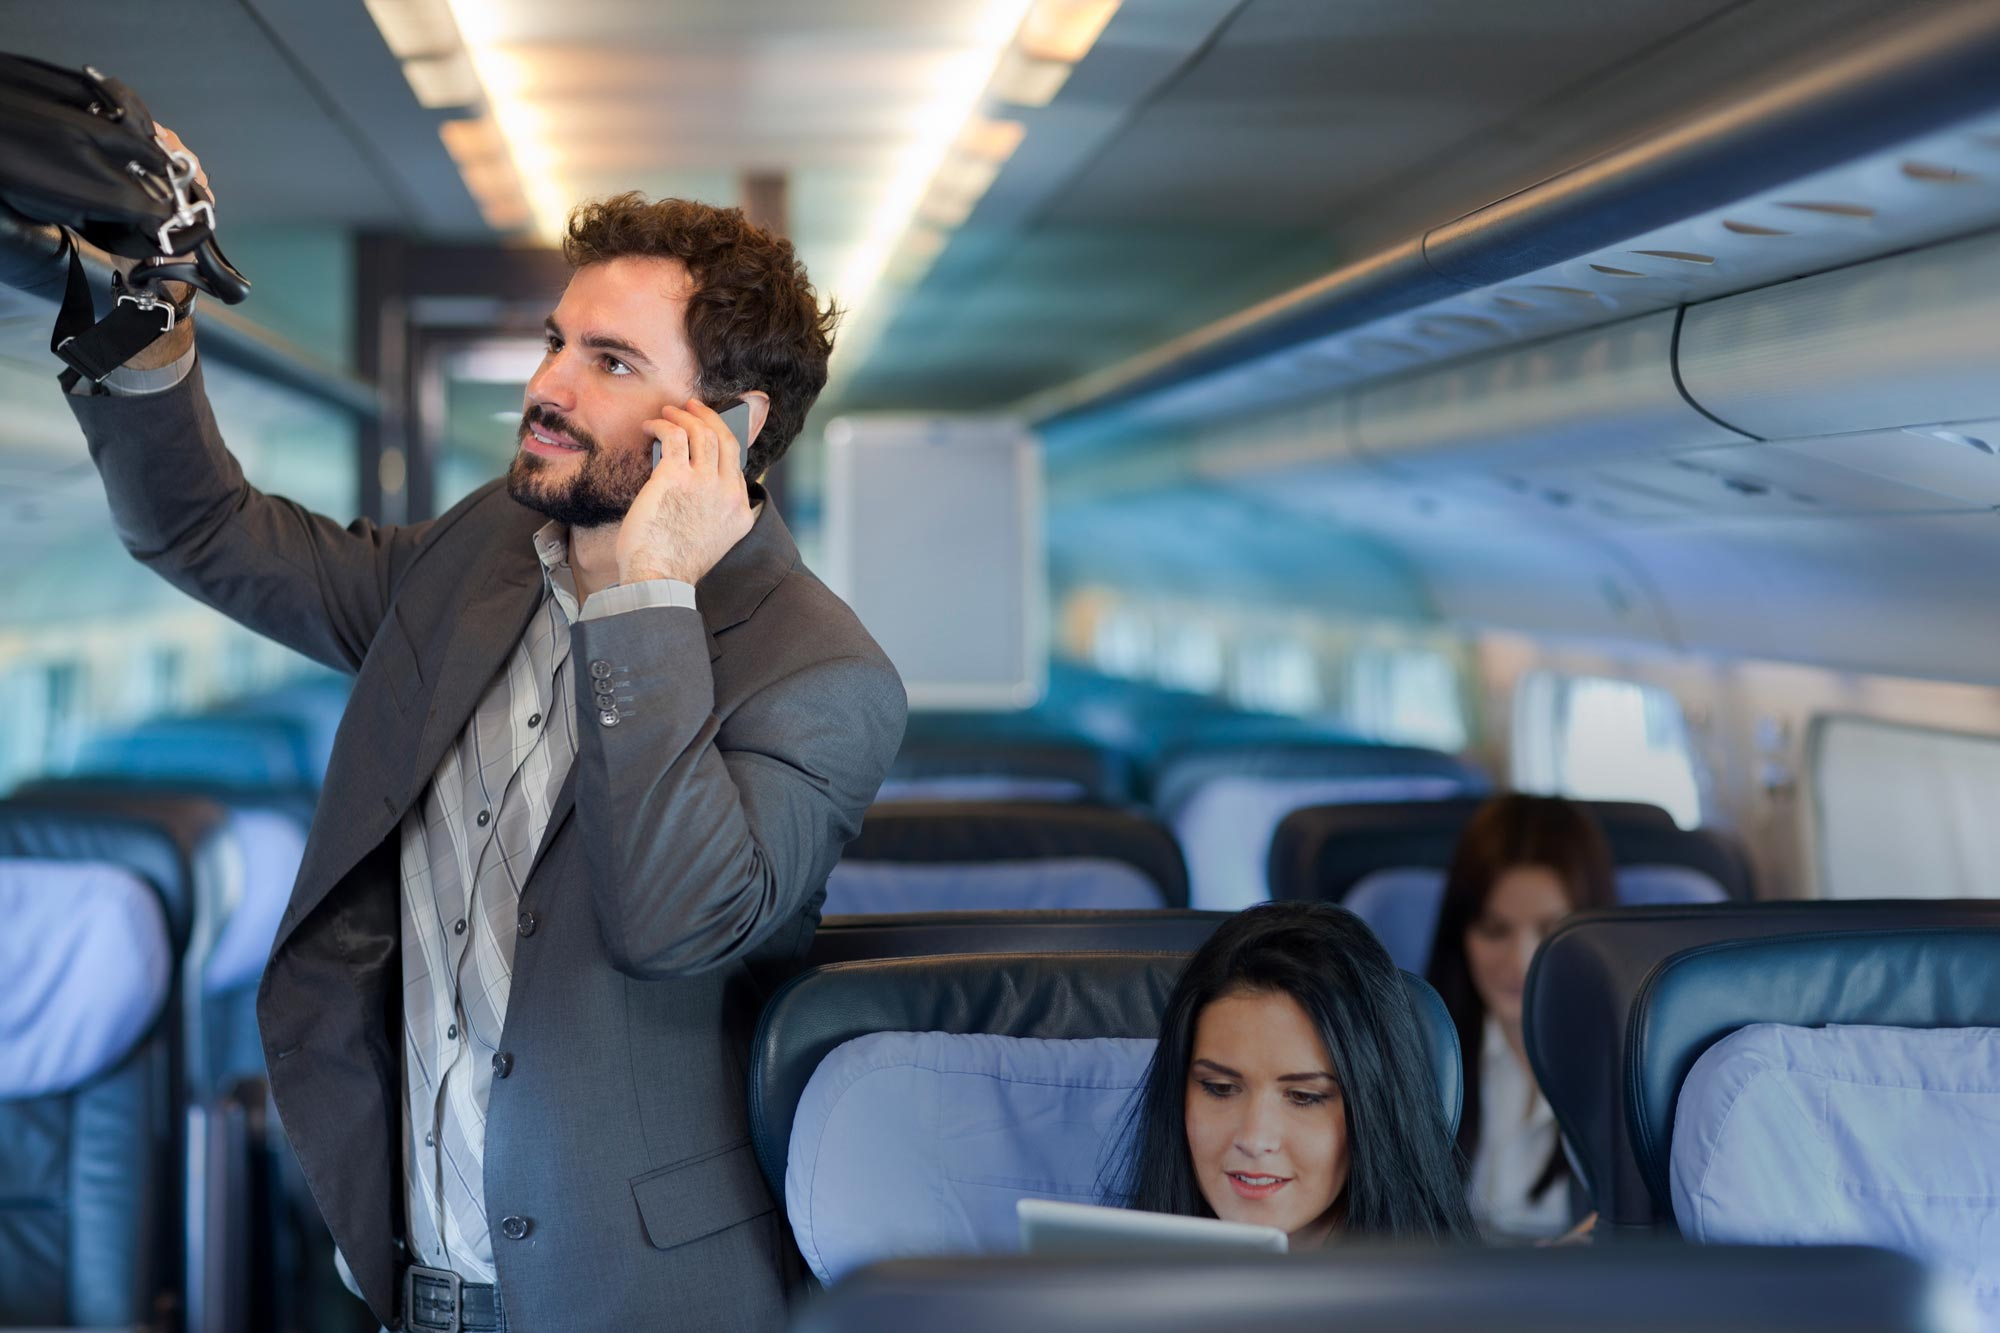 Amtrak makes $435 luxury bag out of old leather train seats